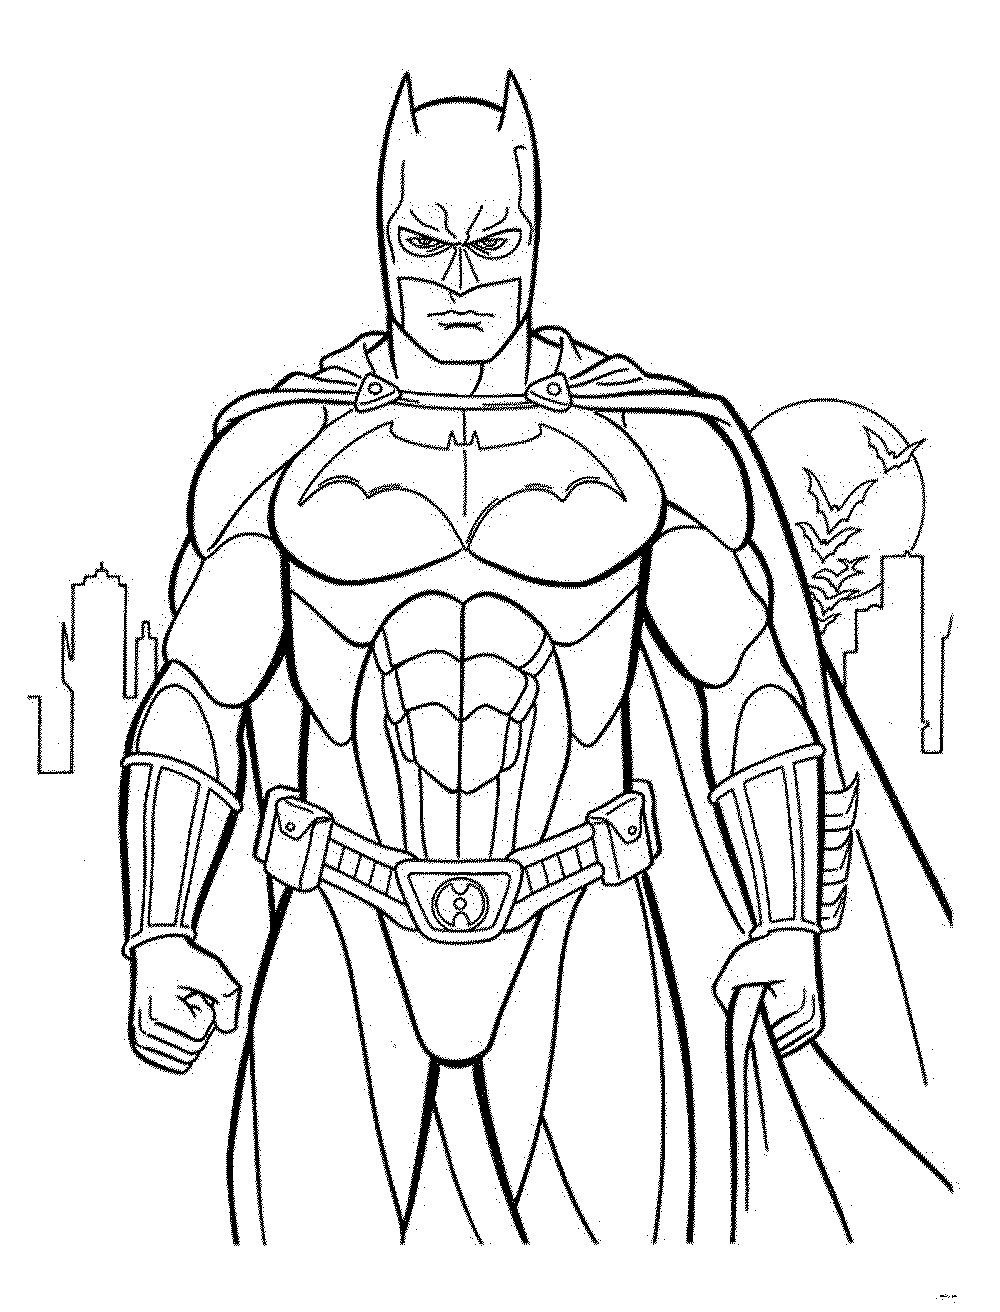 Batman Color Pages Lego Batman Coloring Pages Free Printable - Free Printable Batman Coloring Pages